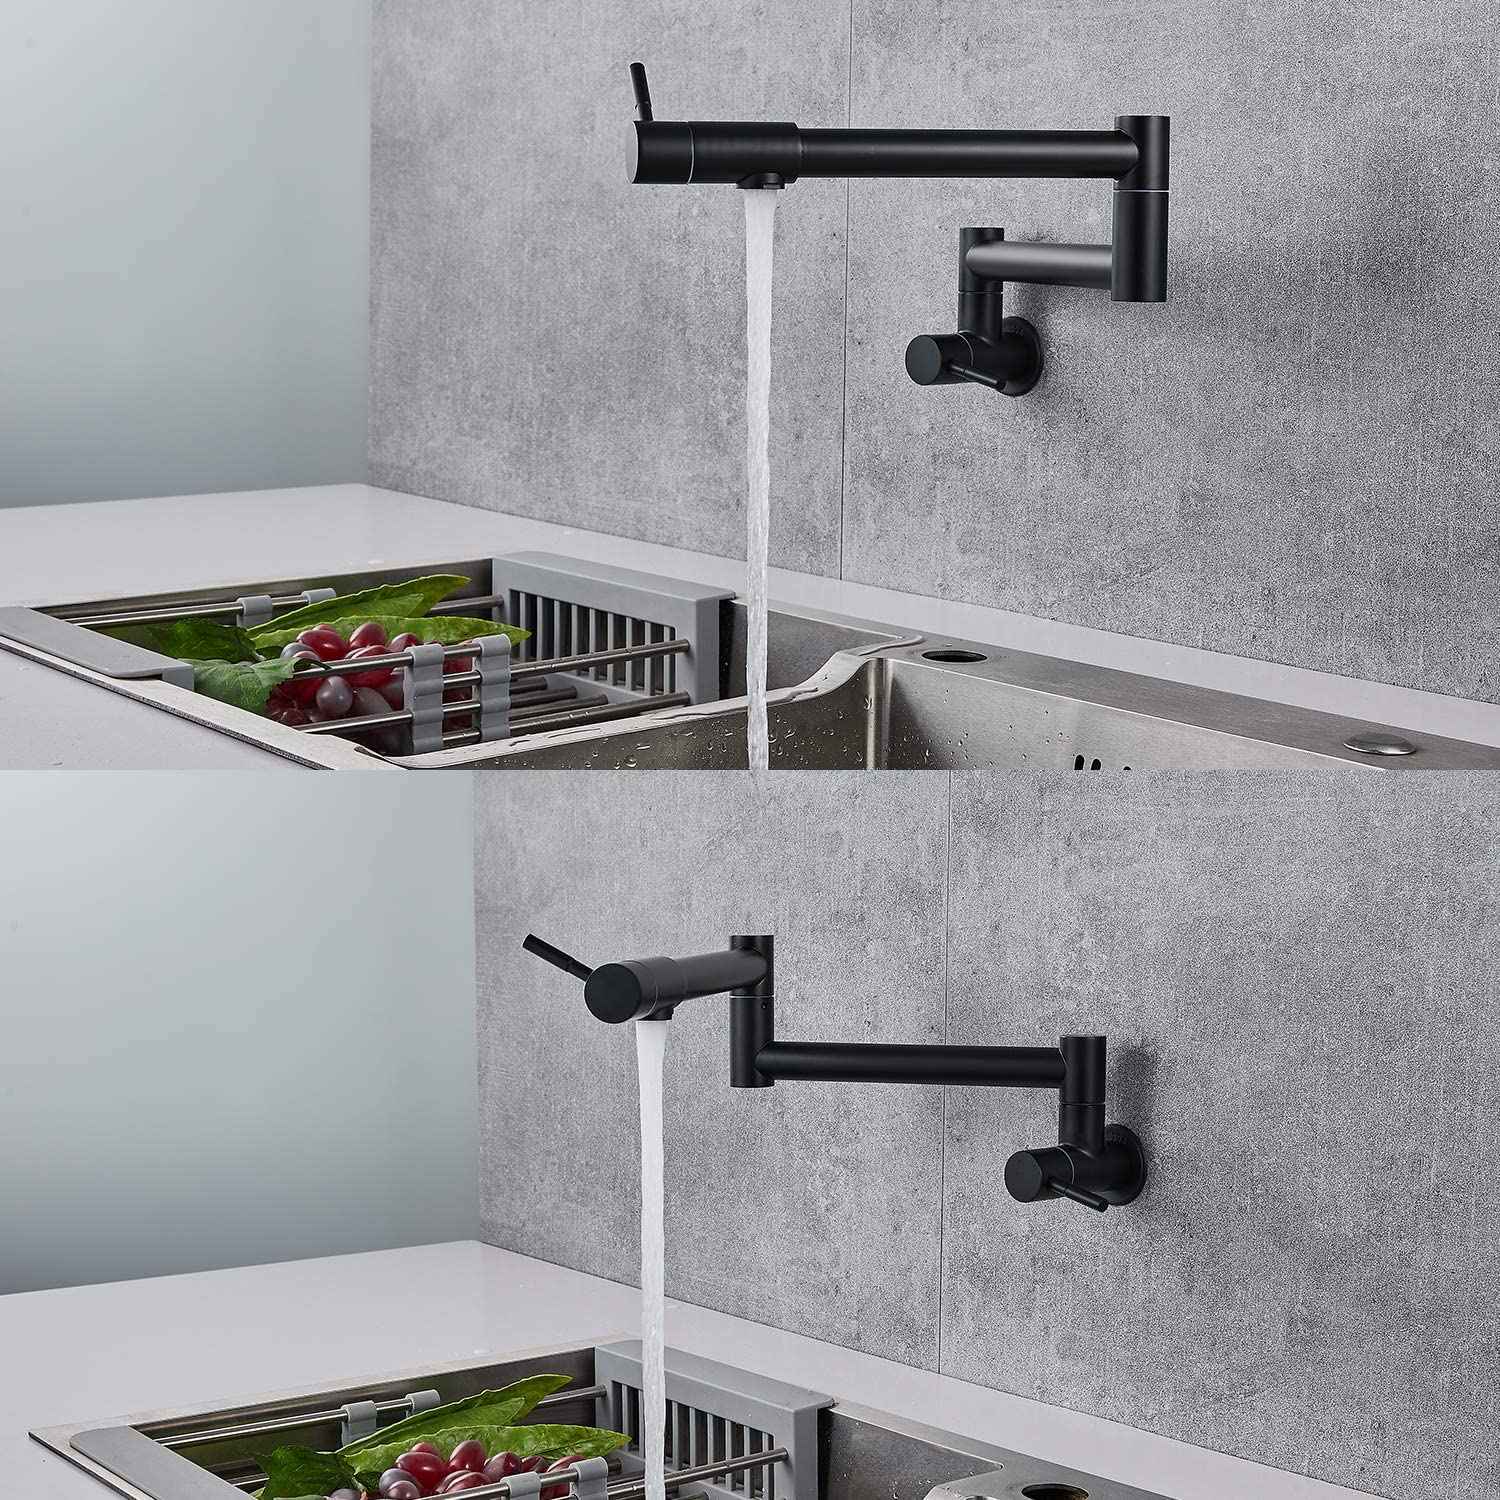 Pot Filler Faucet Wall Mount Matte Black Kitchen Restaurant Sink Stretchable Commercial Faucet with Folding Double Joint Swing Arm Single Hole Two Handles NPT Stainless Steel